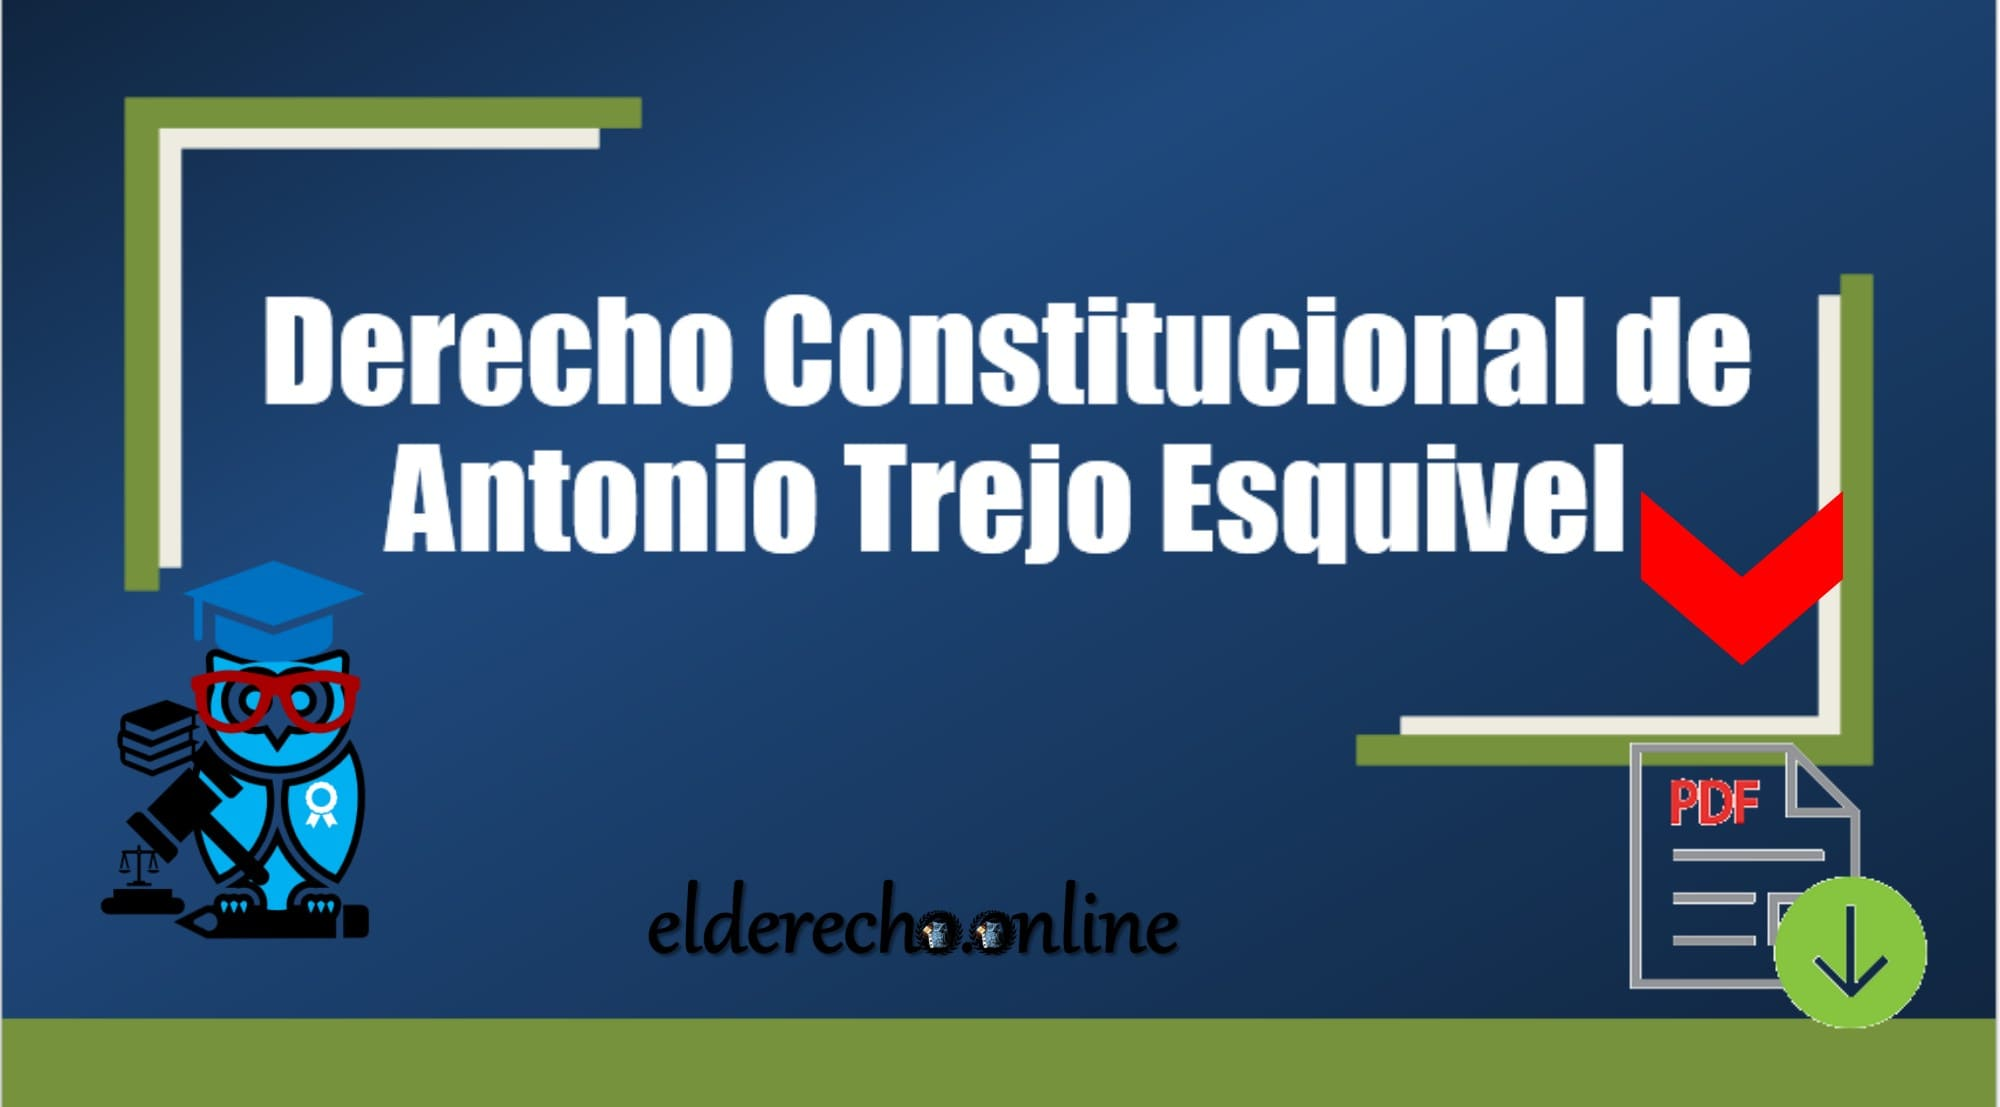 Photo of Derecho Constitucional de Antonio Trejo Esquivel